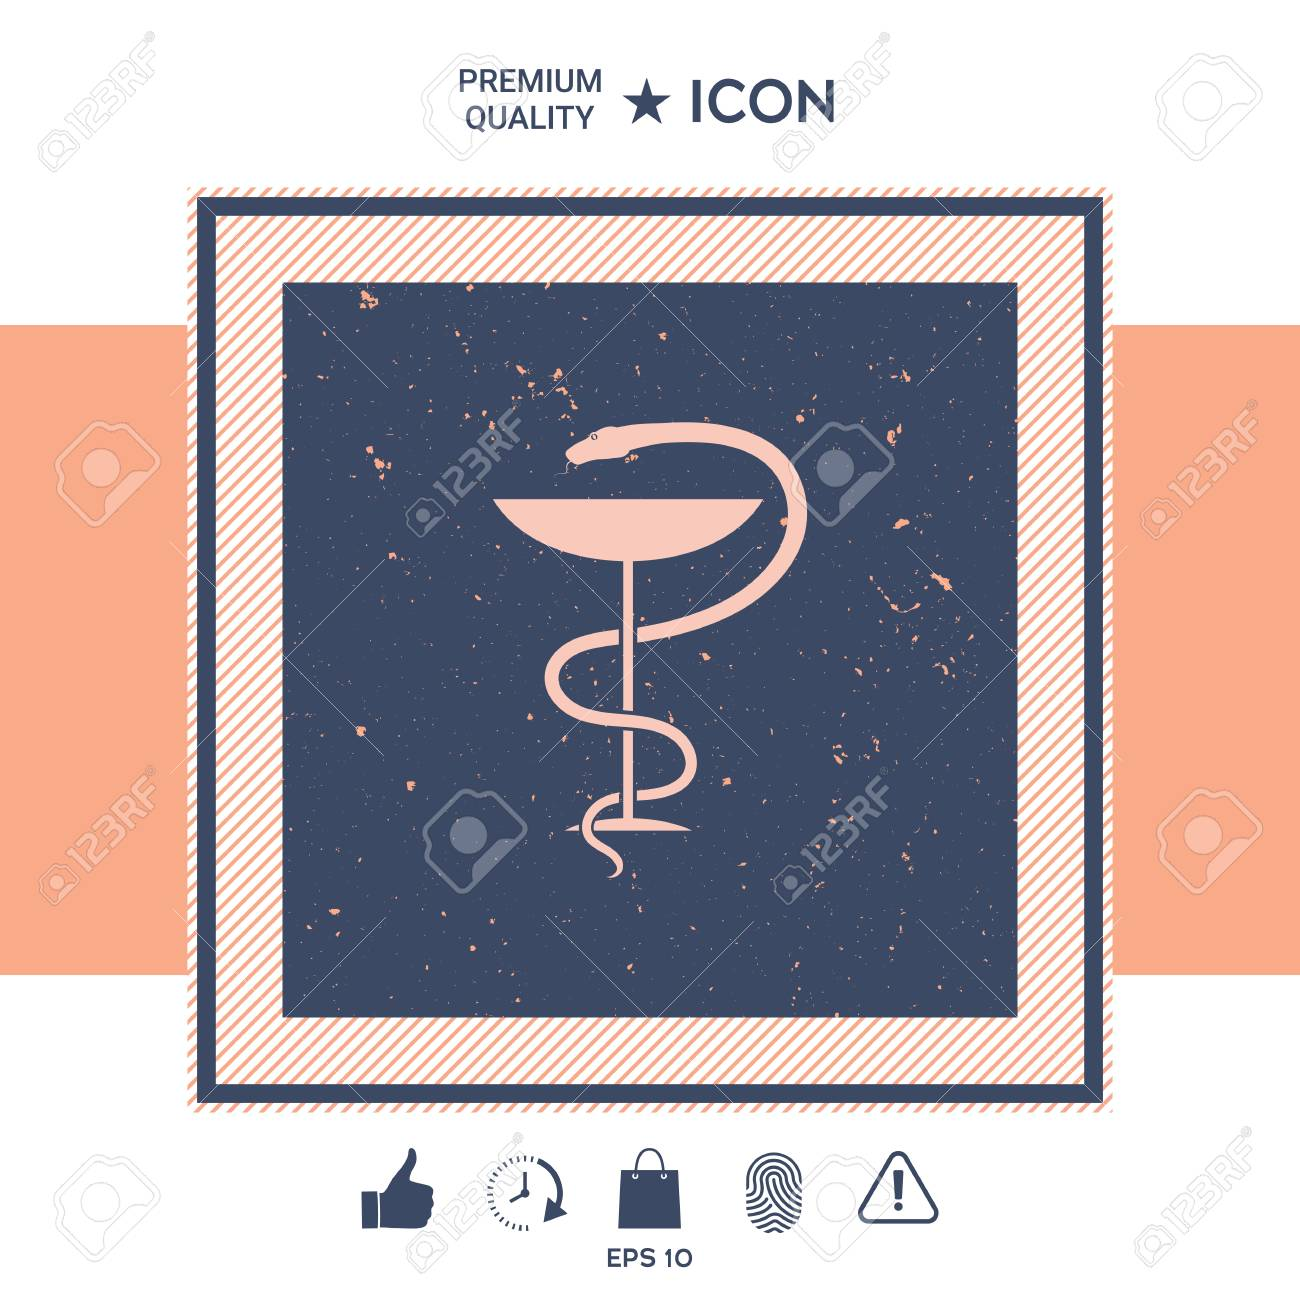 Medical Symbol Medical Snake And Cup Royalty Free Cliparts Vectors